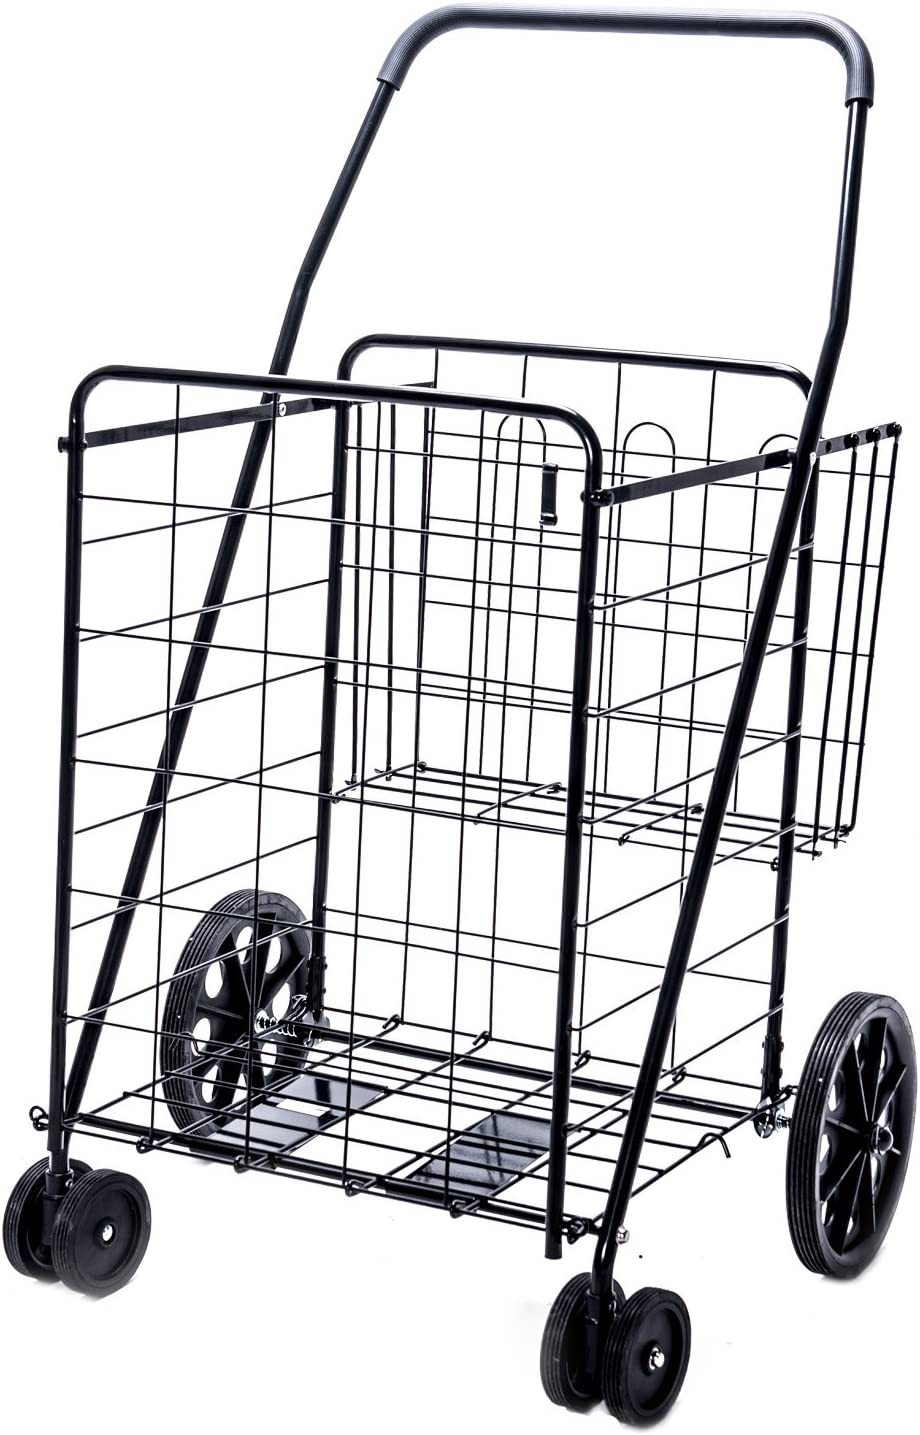 Lifestyle Solutions - Jumbo Deluxe Folding Shopping Cart with Dual Swivel Wheels and Double Basket- 200 lb capacity!